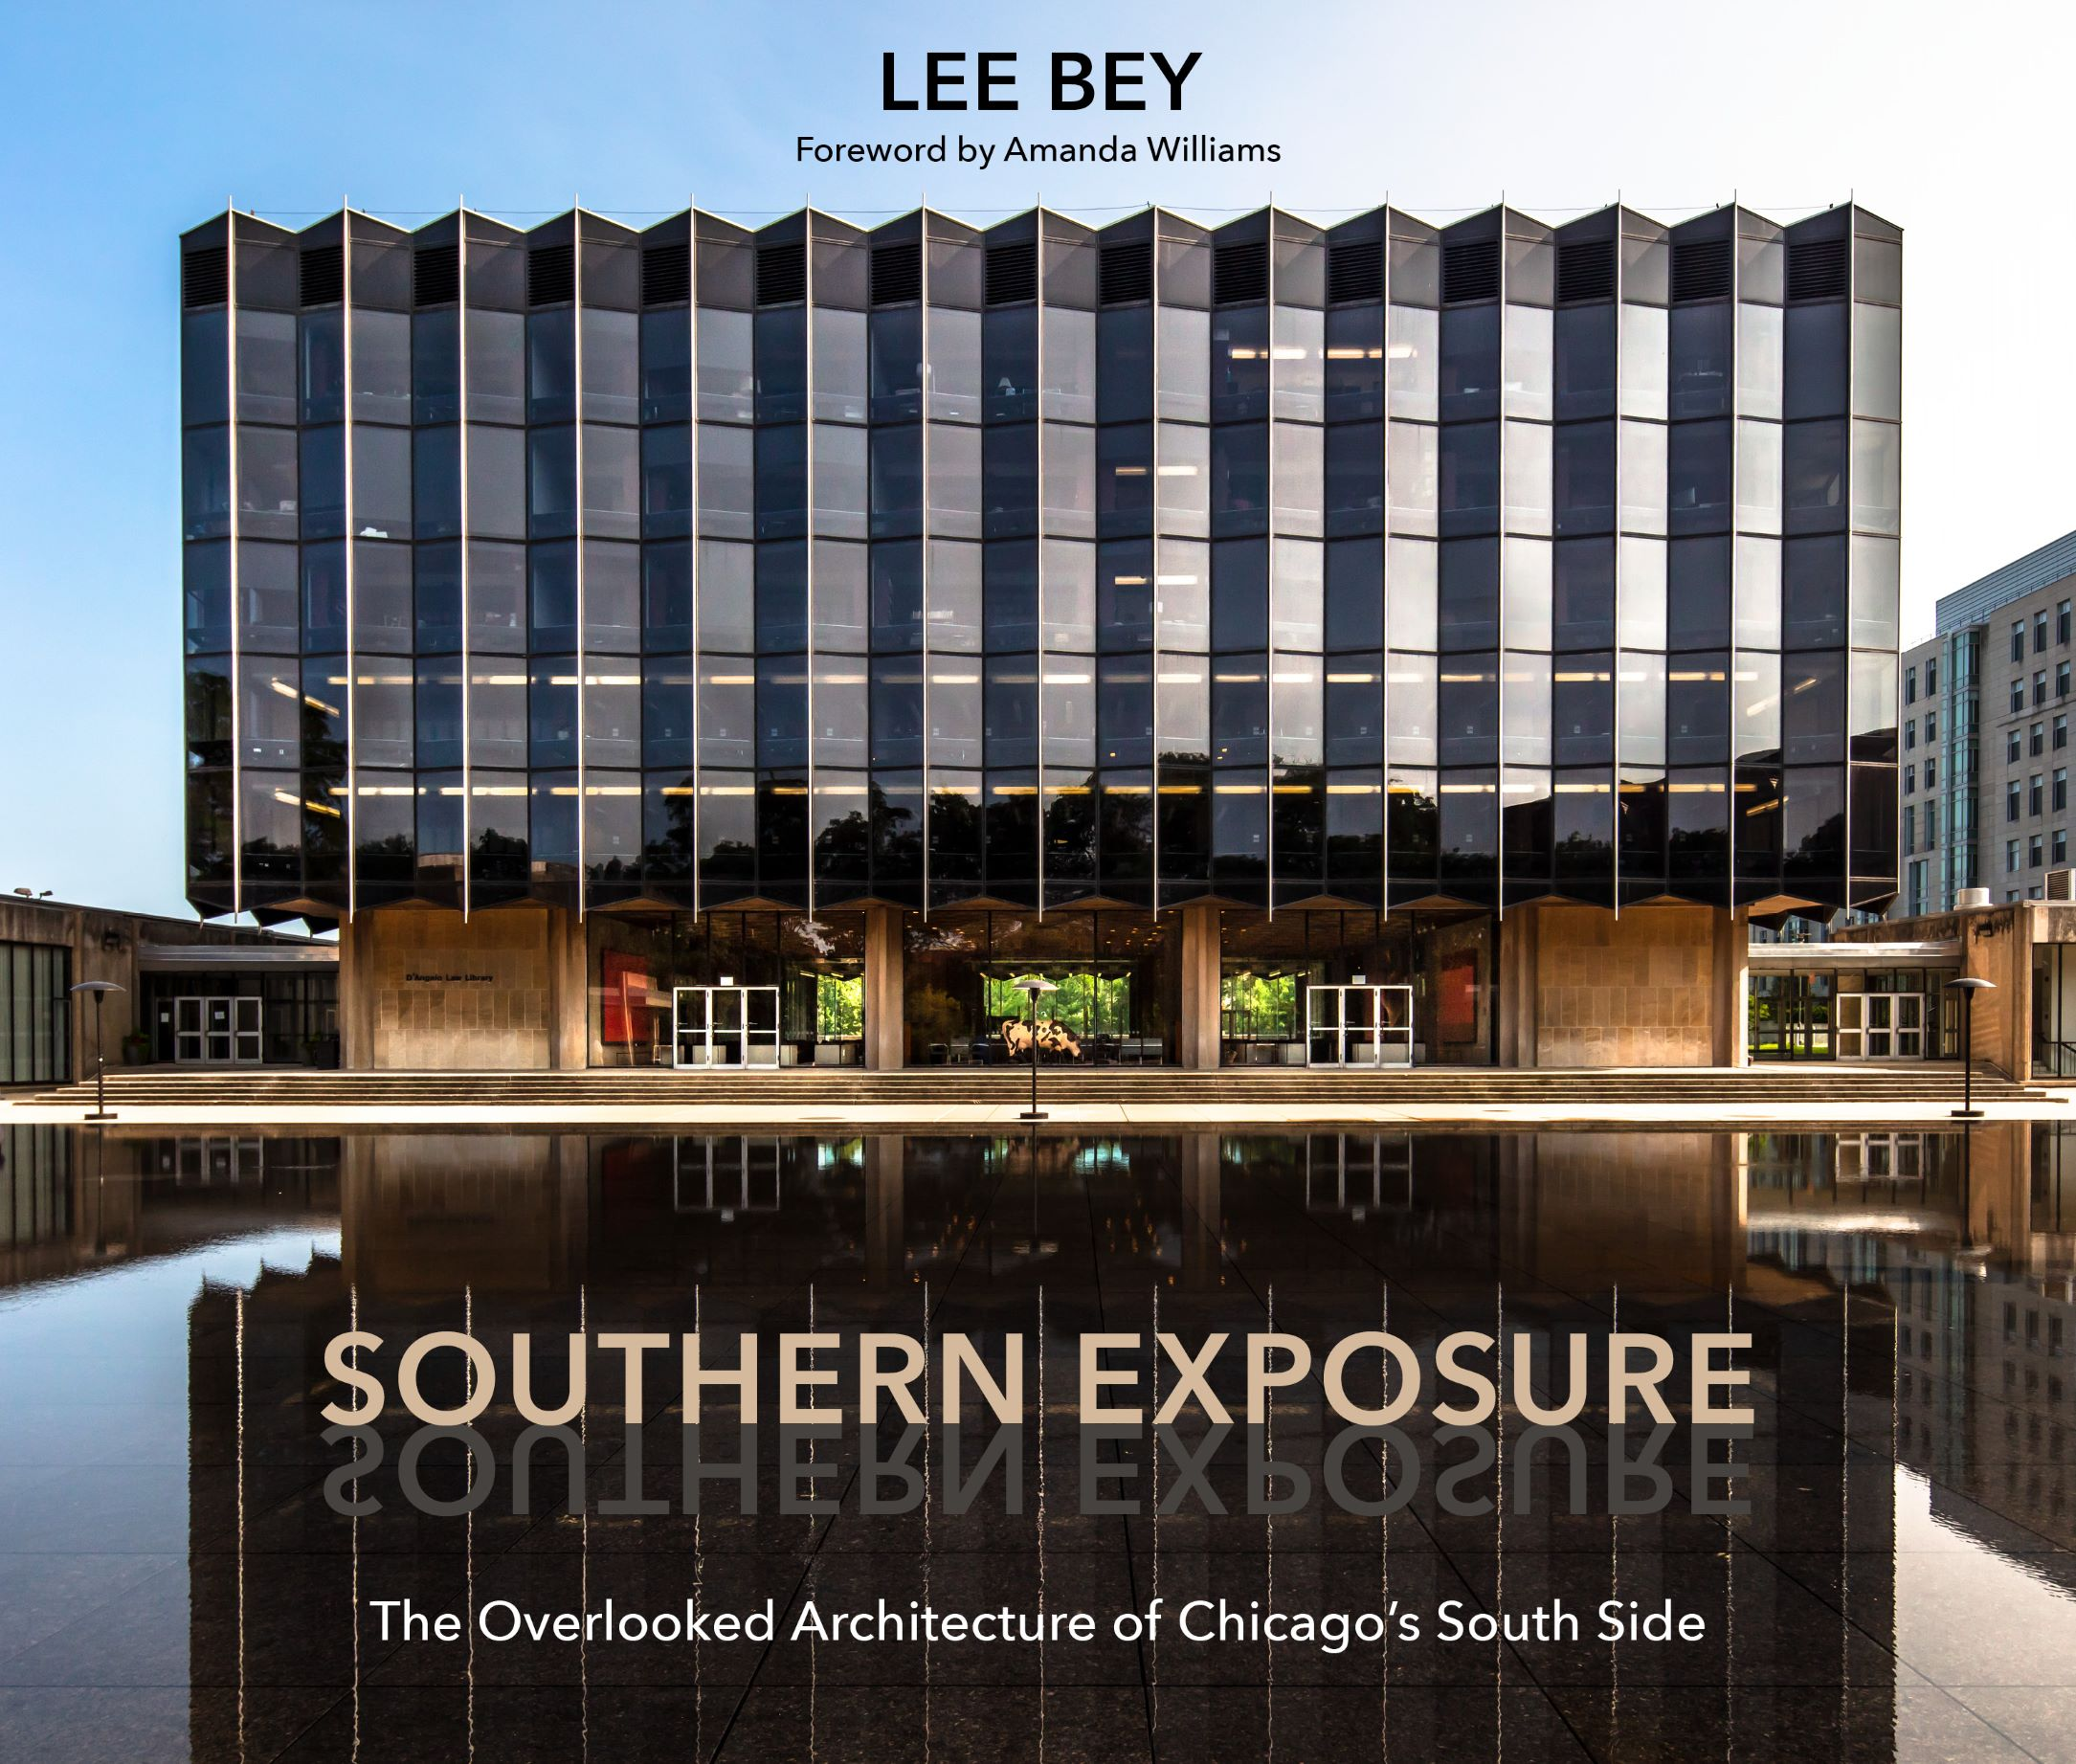 Honoring Chicago's South Side Architecture